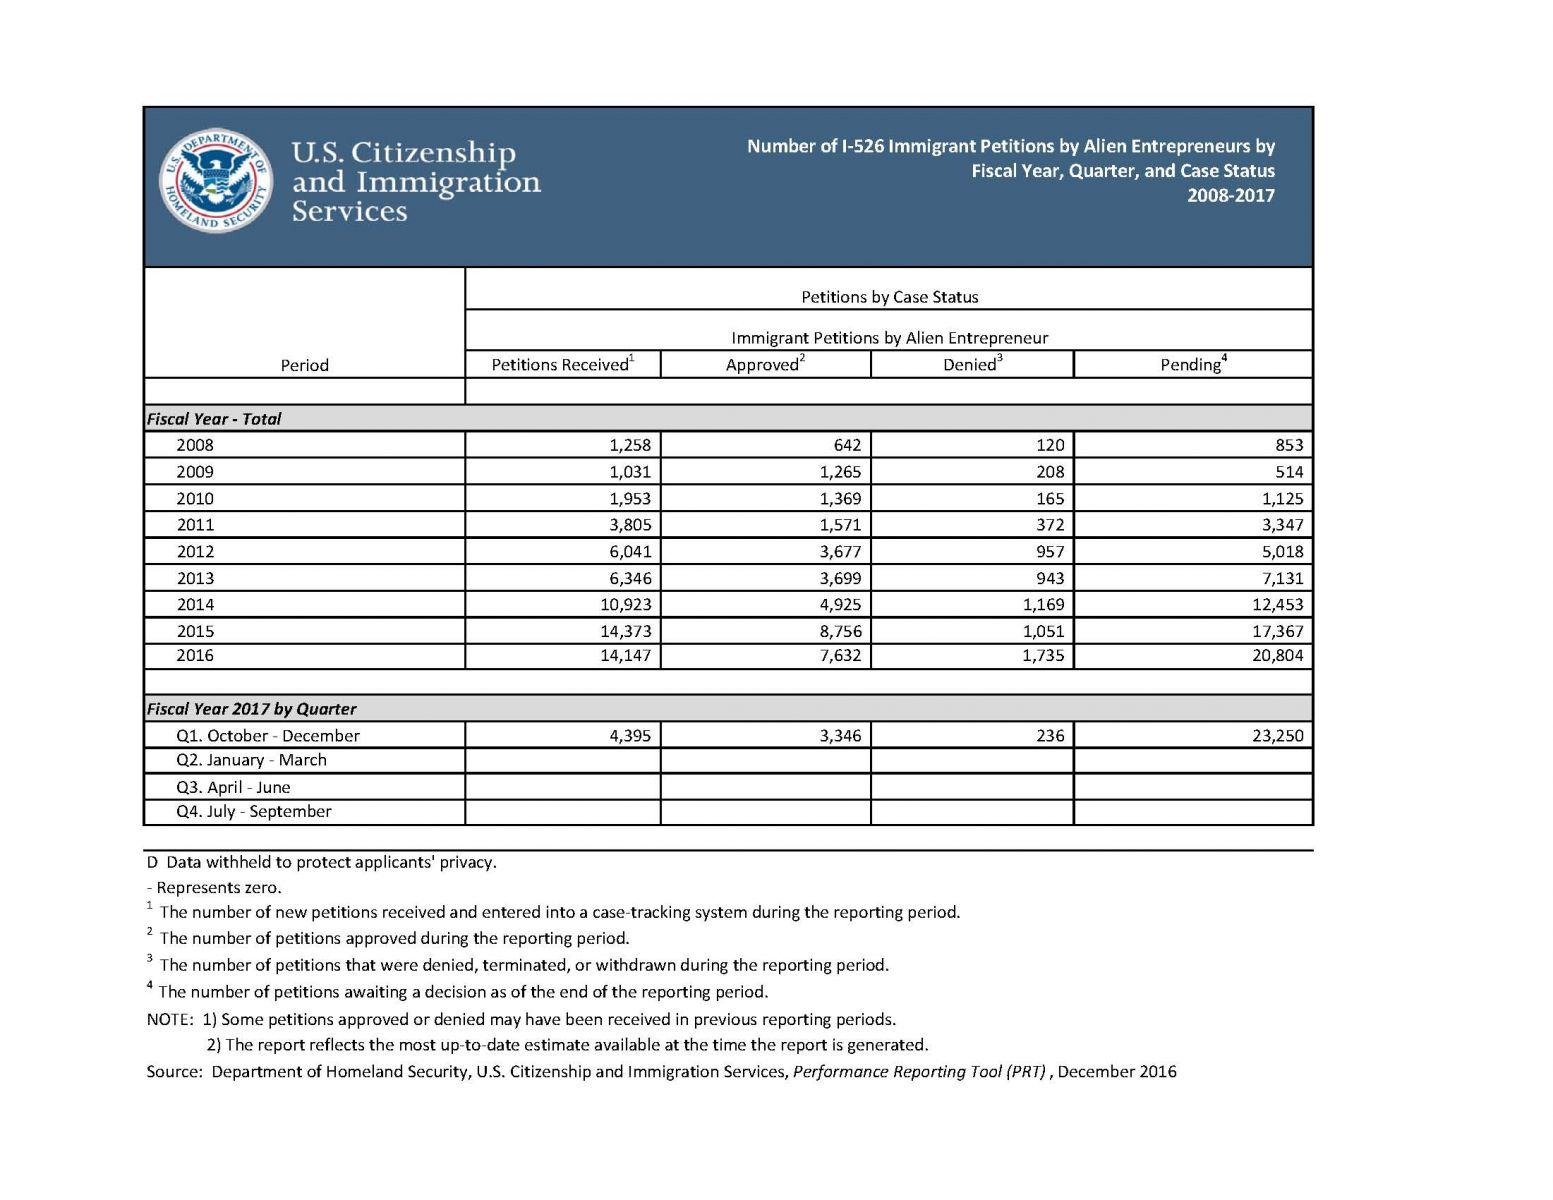 Form i 529i 826 performance statistics and eb5 visa click image to view full size falaconquin